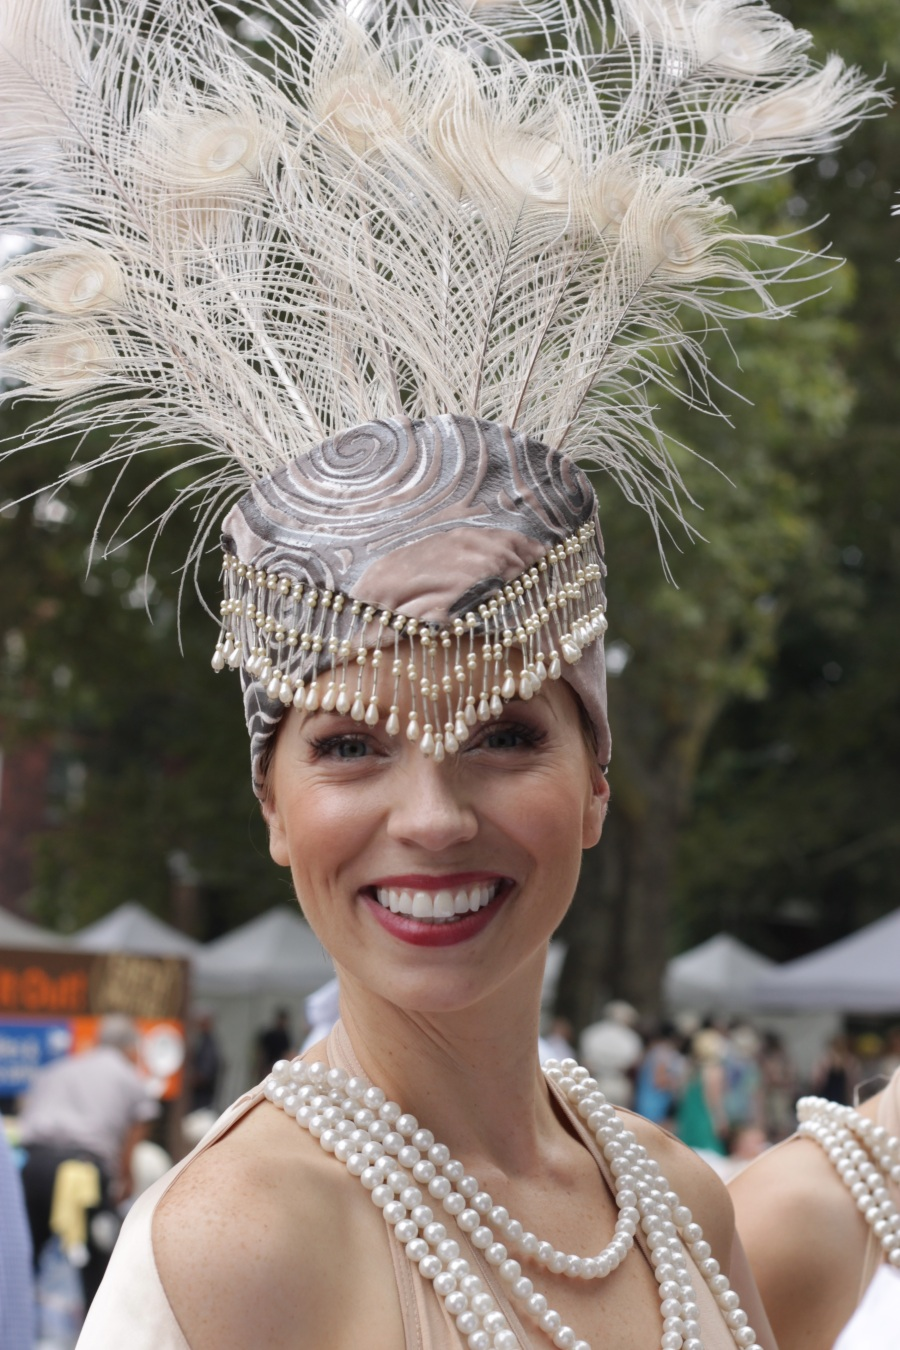 new york city governors island jazz age lawn party august 17 2014 99